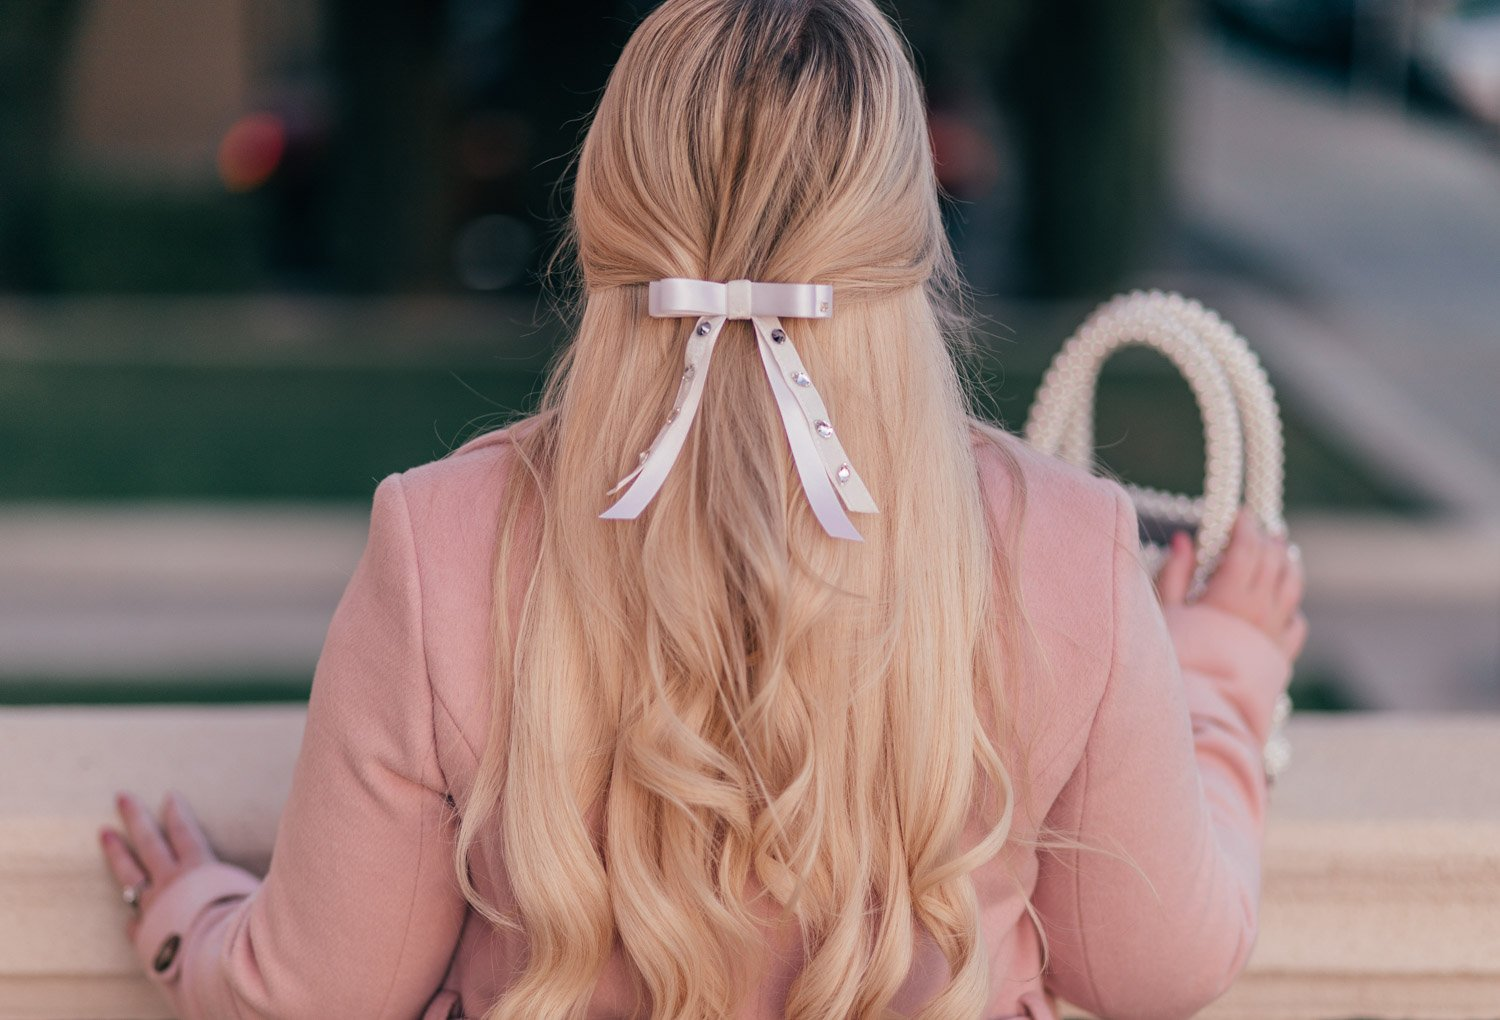 Feminine Fashion Blogger Elizabeth Hugen of Lizzie in Lace shares her girly hair accessories collection including this white hair bow